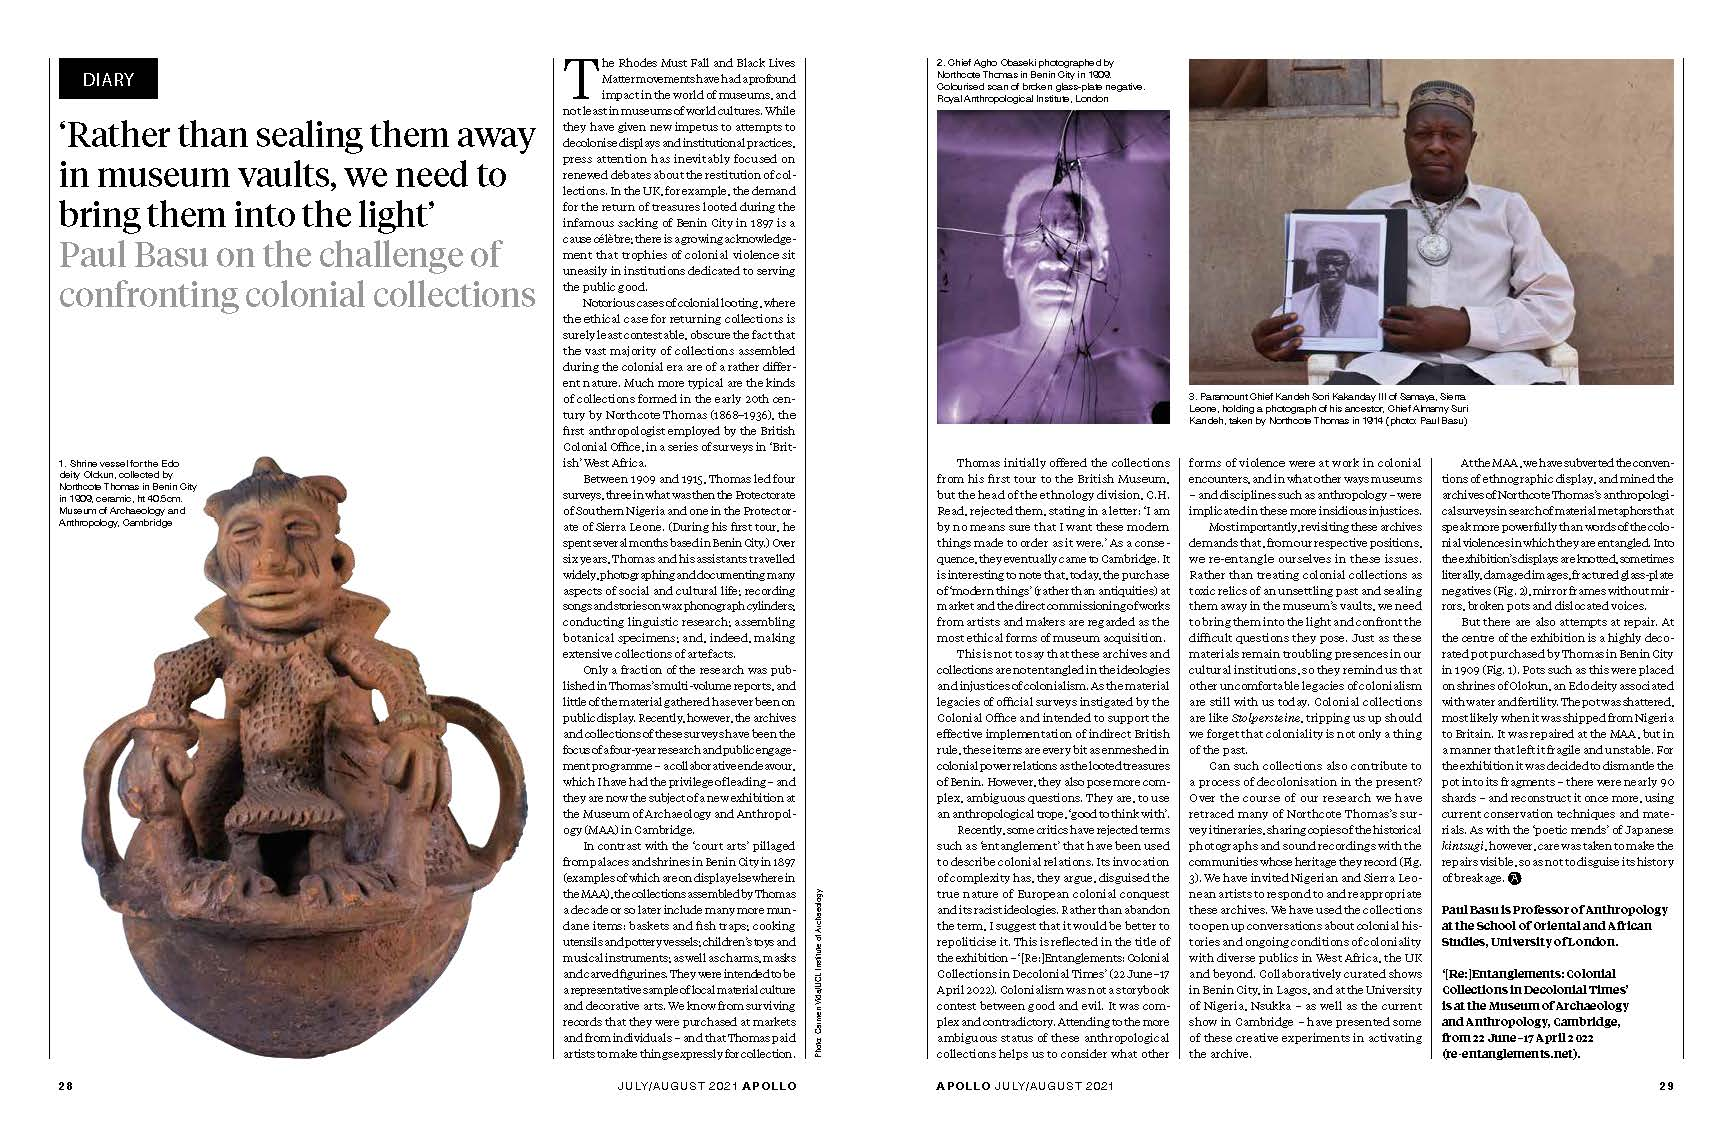 Screenshot of Apollo article. 'Rather than sealing them away in museum vaults, we need to bring them into the light', Paul Basu on the challenge of confronting colonial collections.